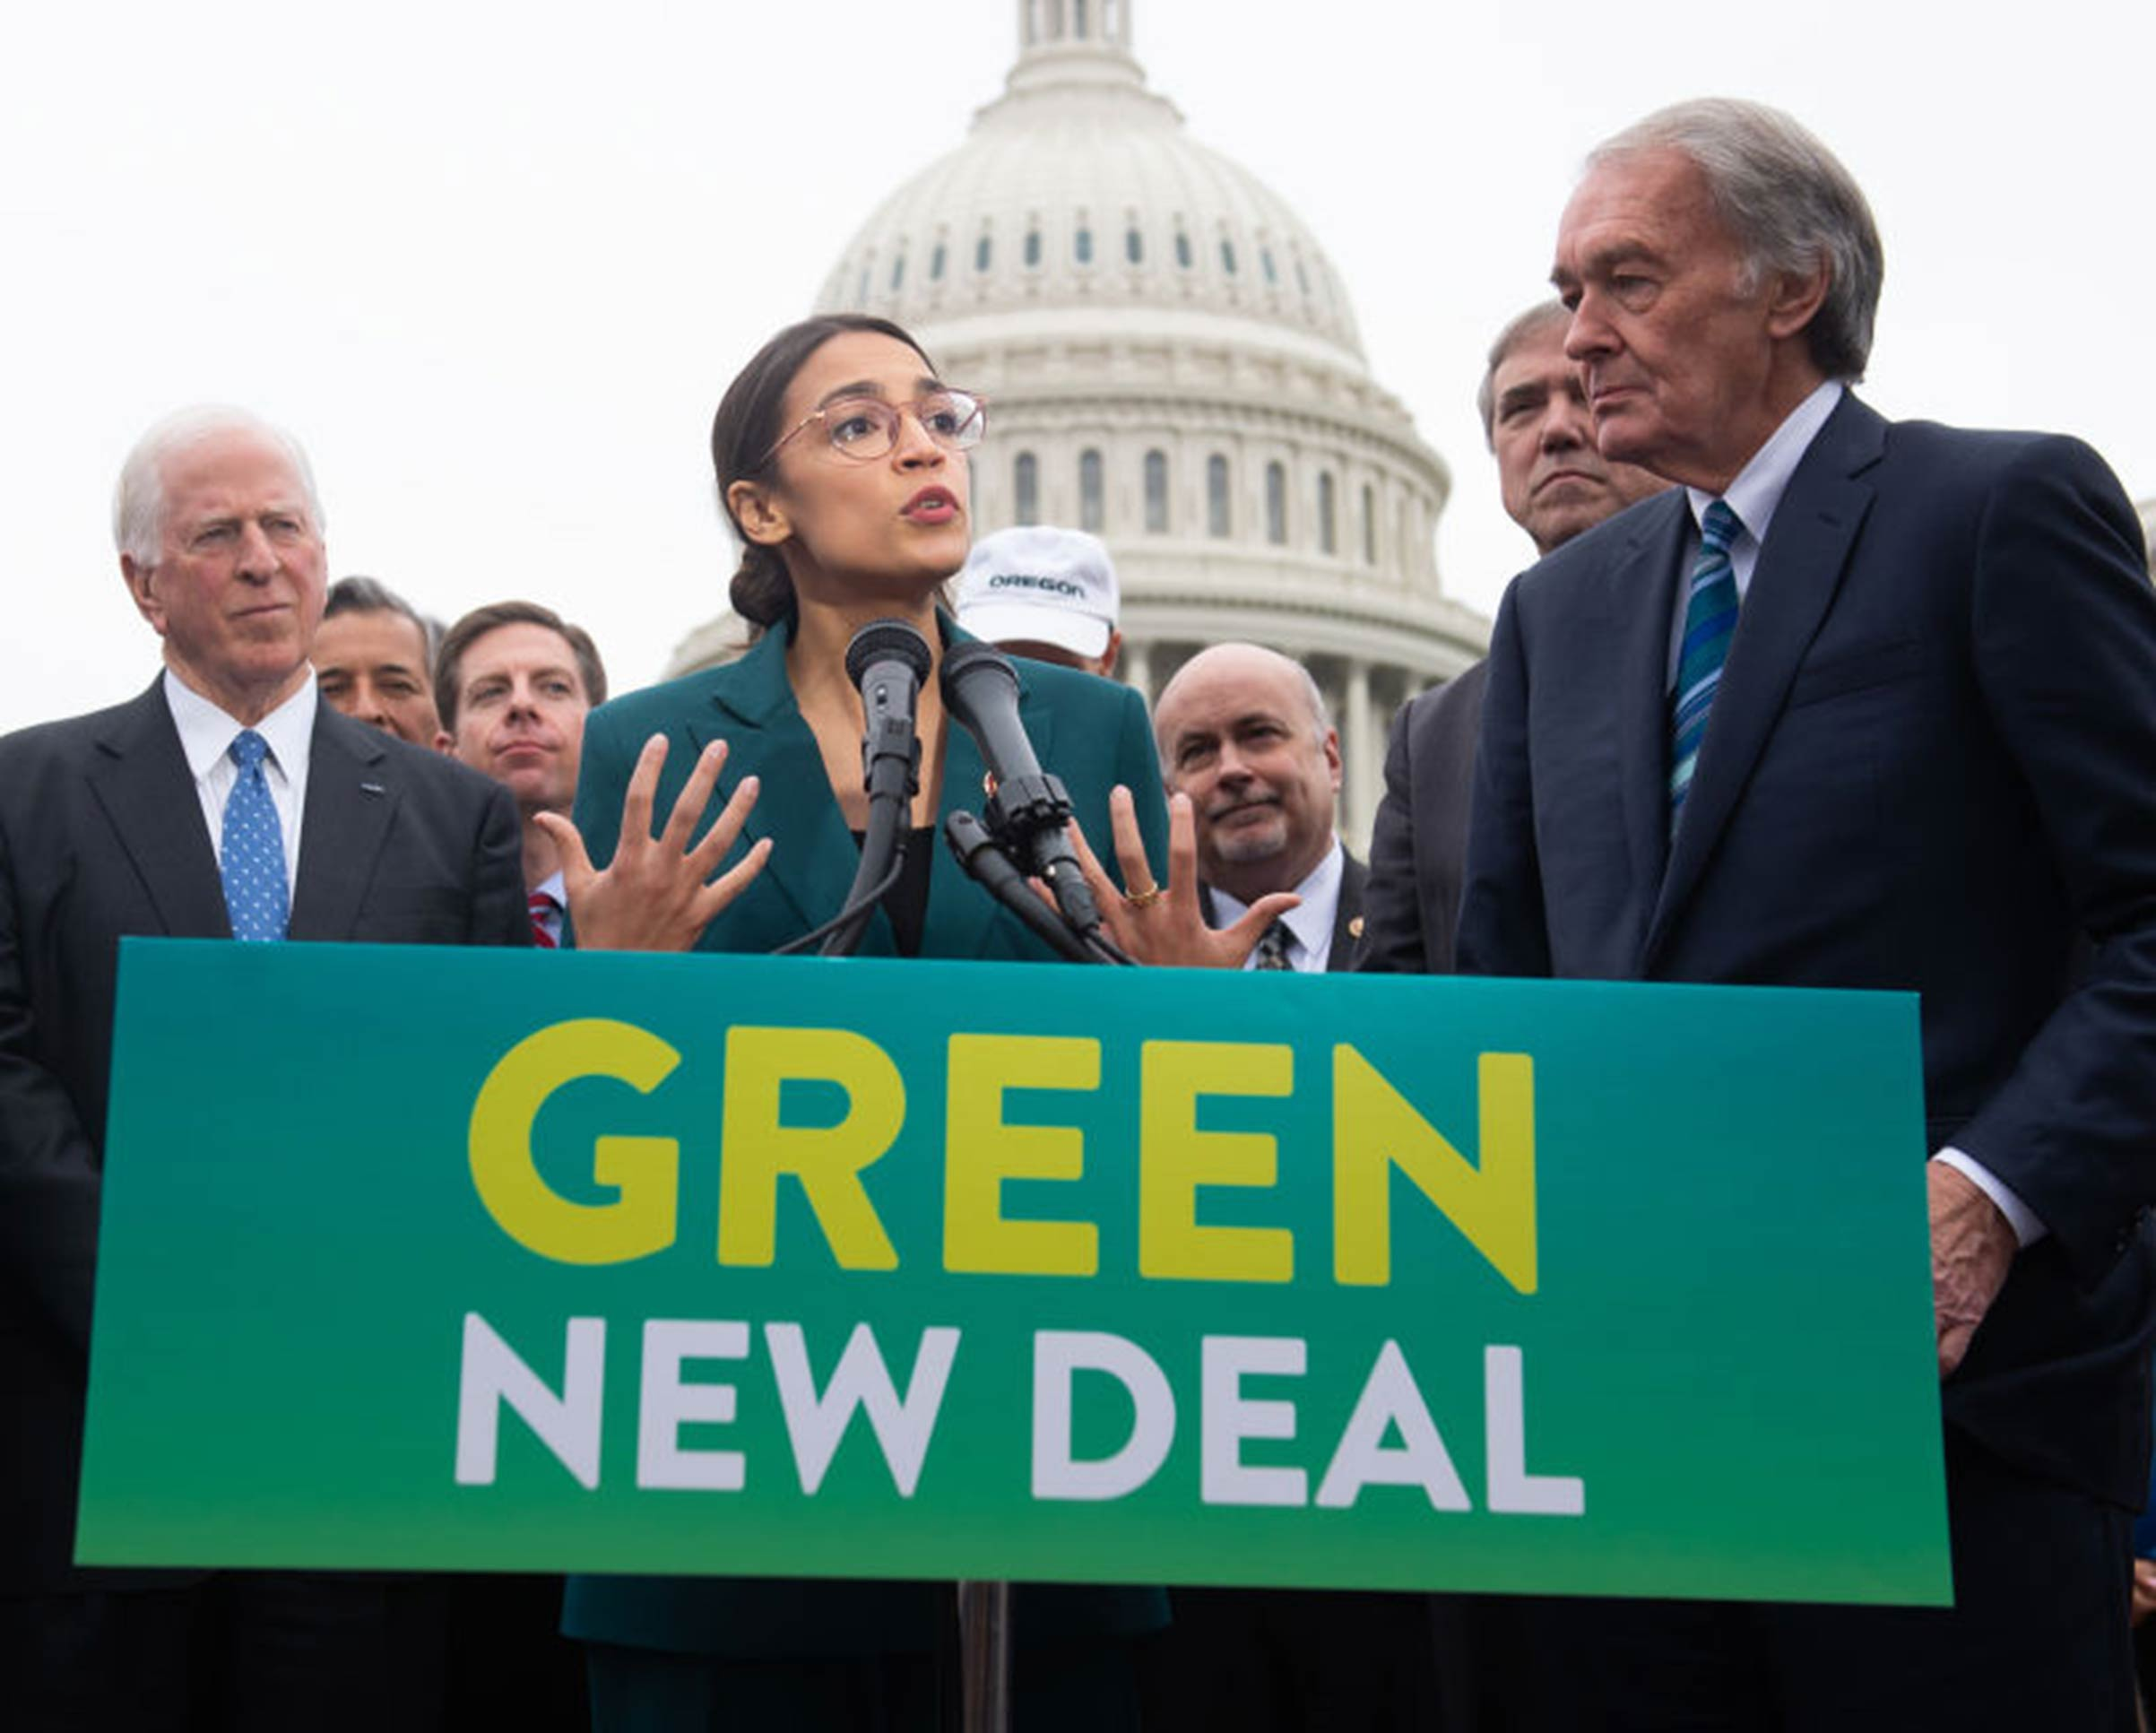 Is the New Green Deal good for Indigenous People? Read it in full for yourself.